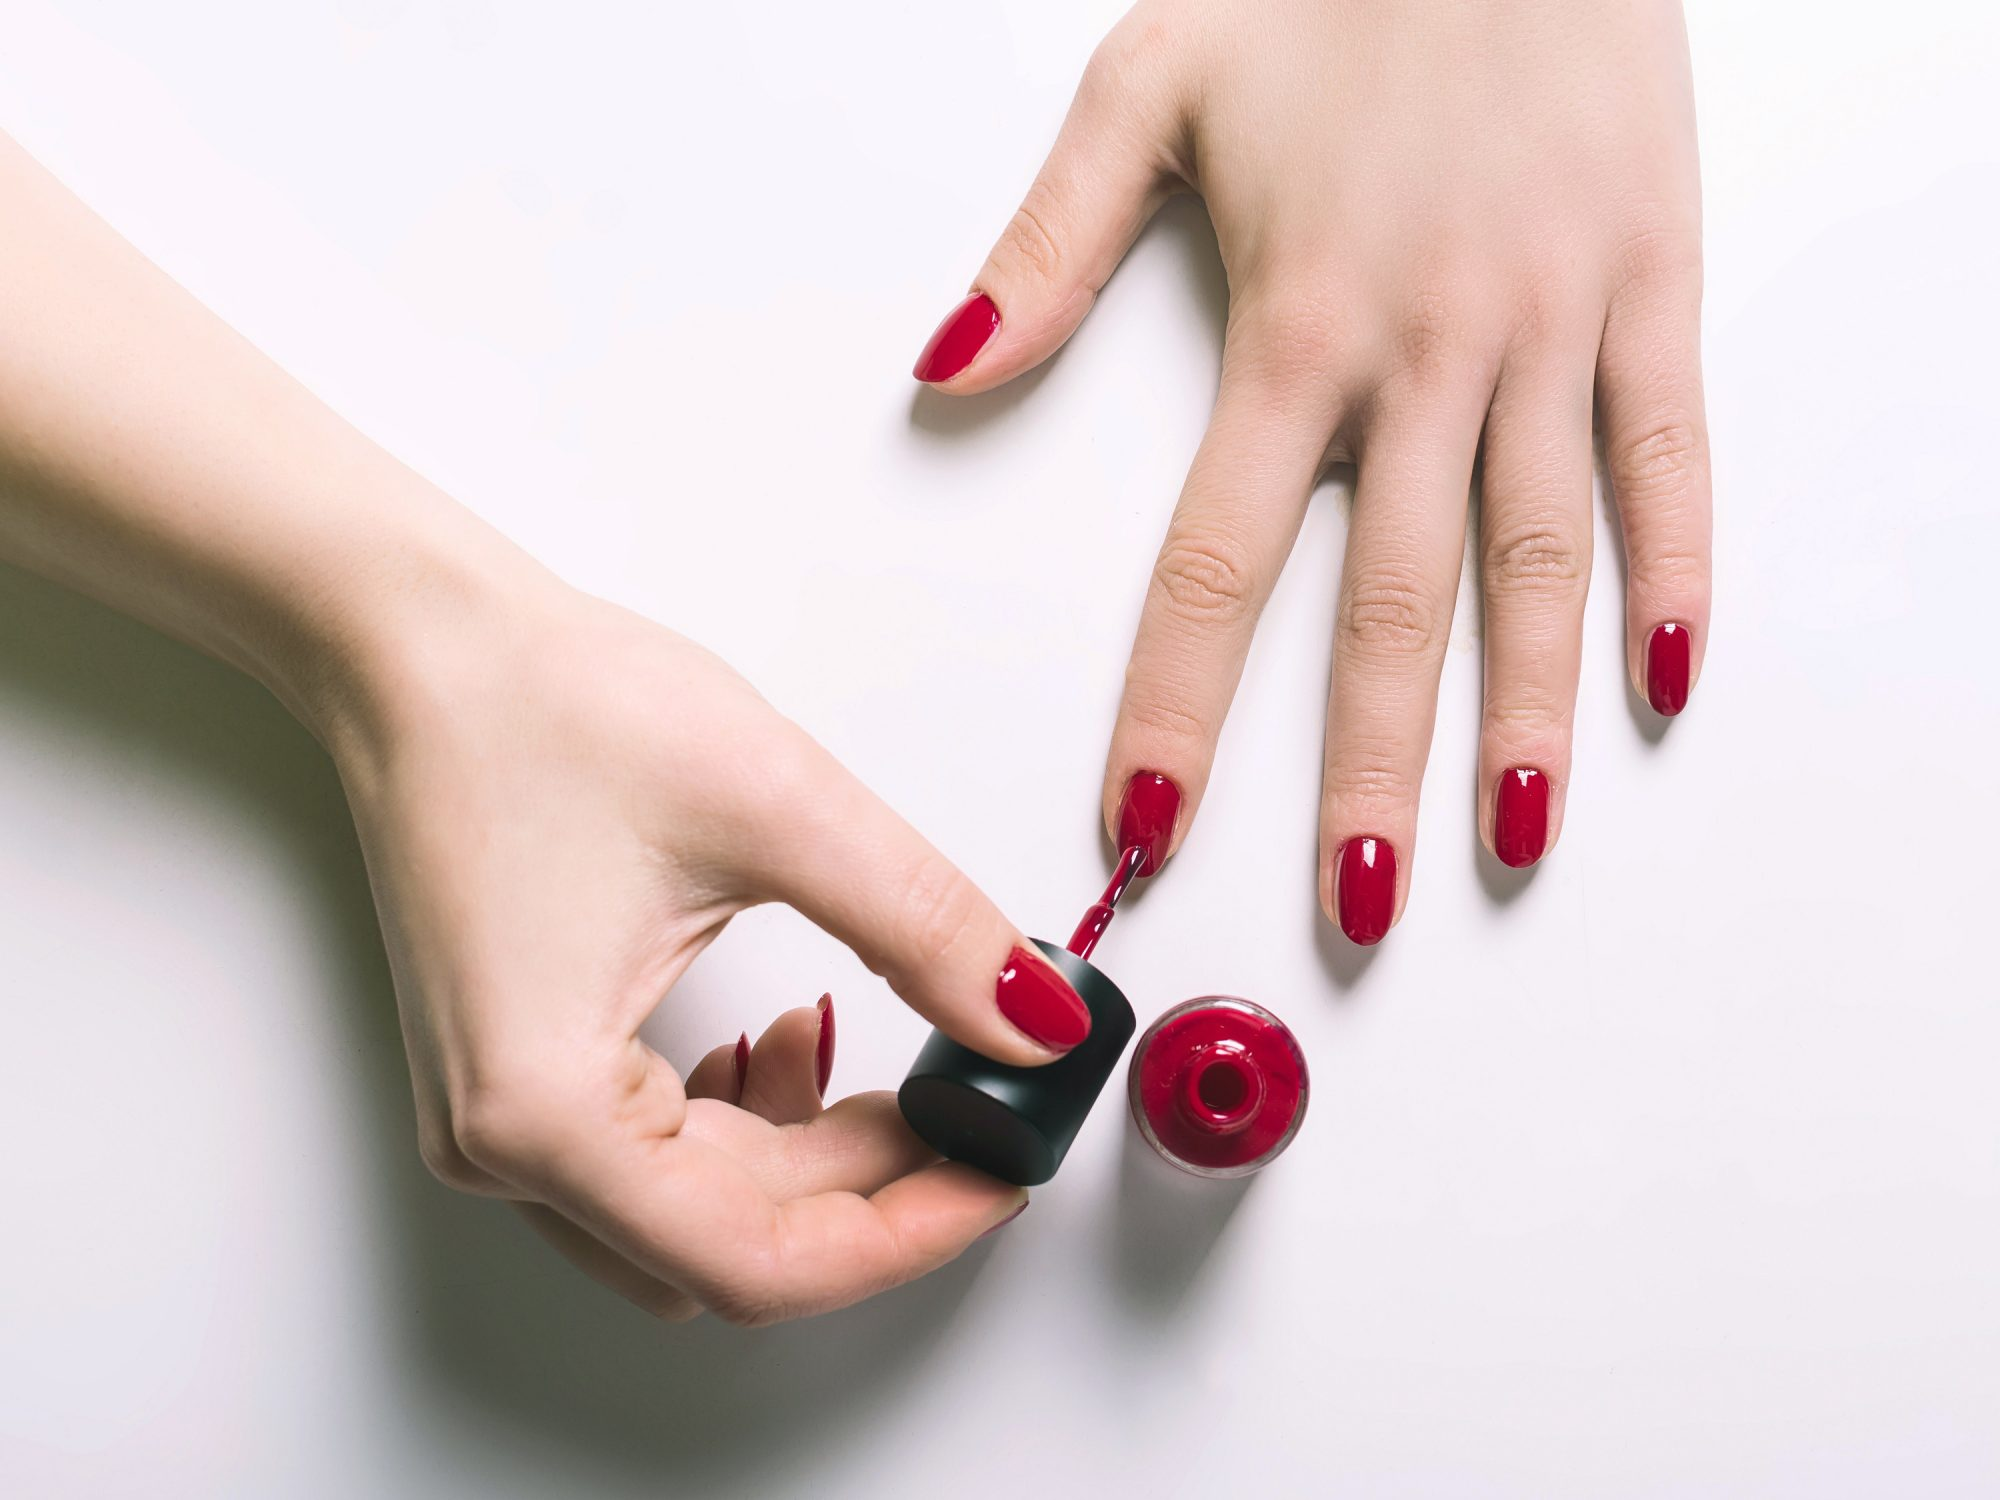 Younger Hands - Red Nail Polish - Lead